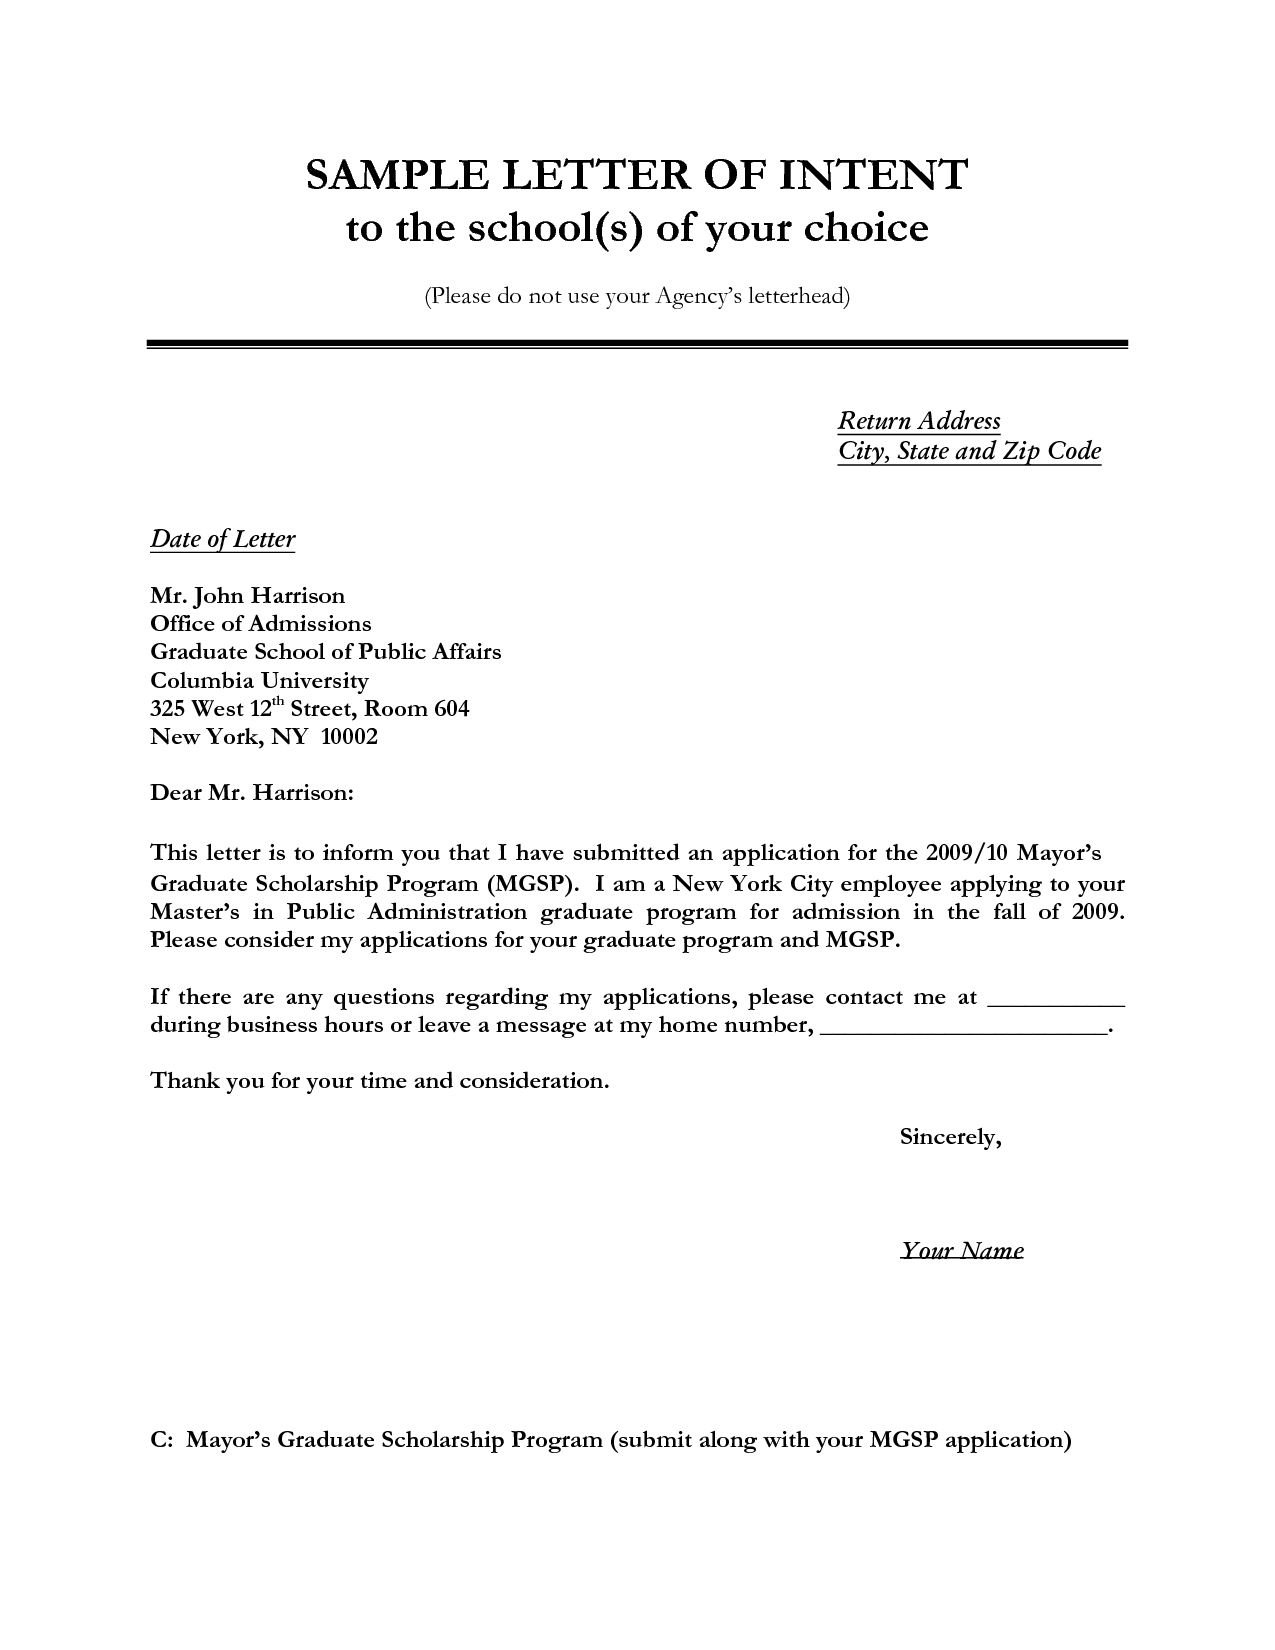 letter of intent template free Collection-Letter of intent sample 20-l